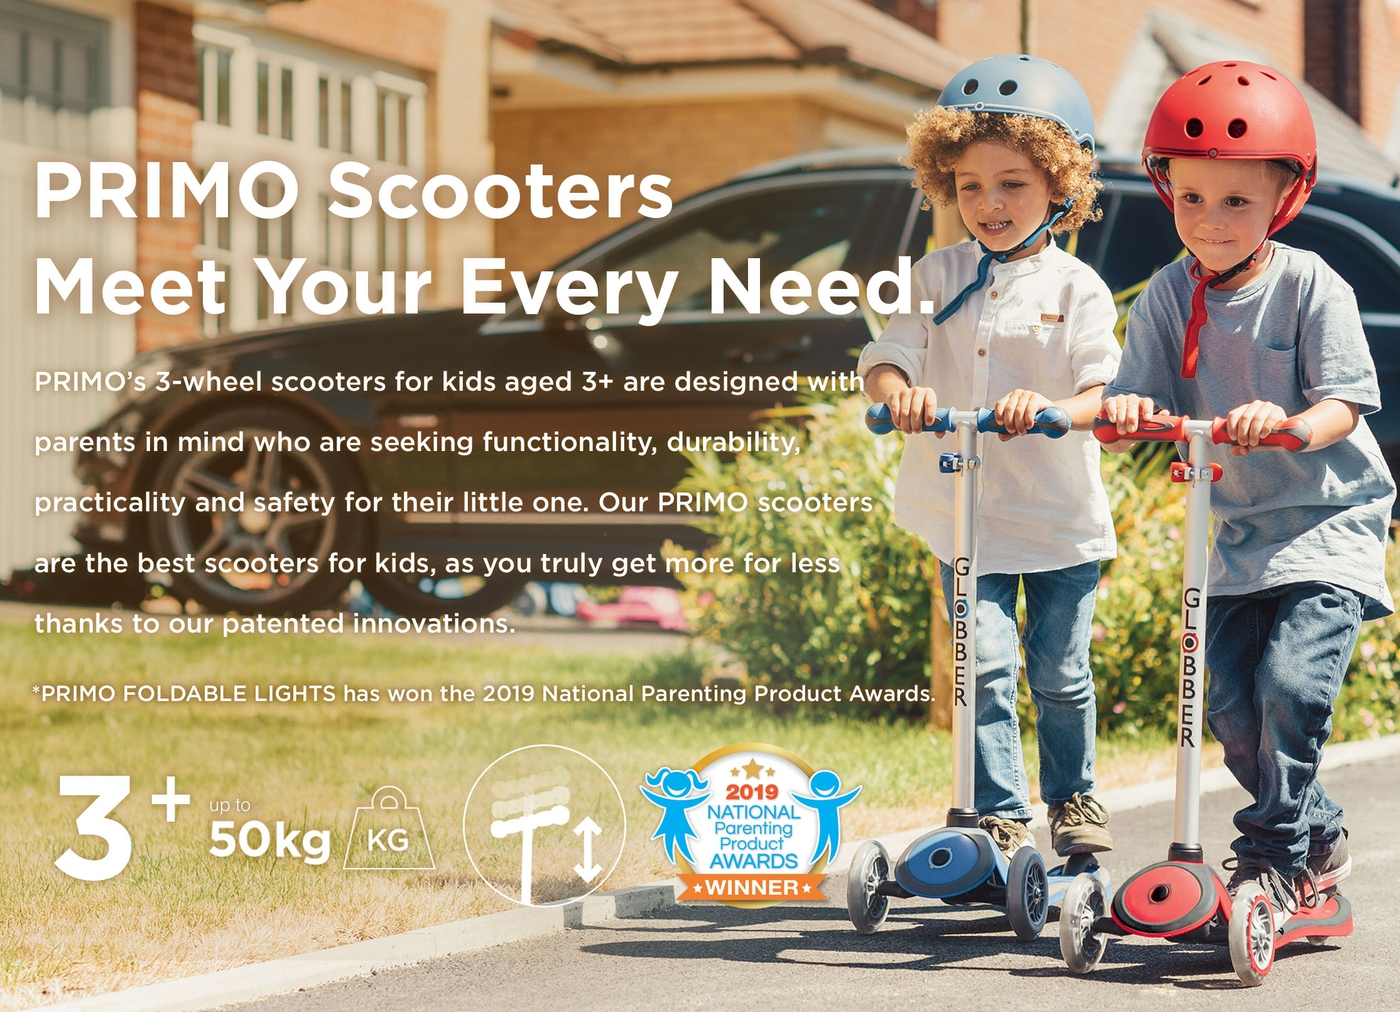 PRIMO Scooters Meet Your Every Need.